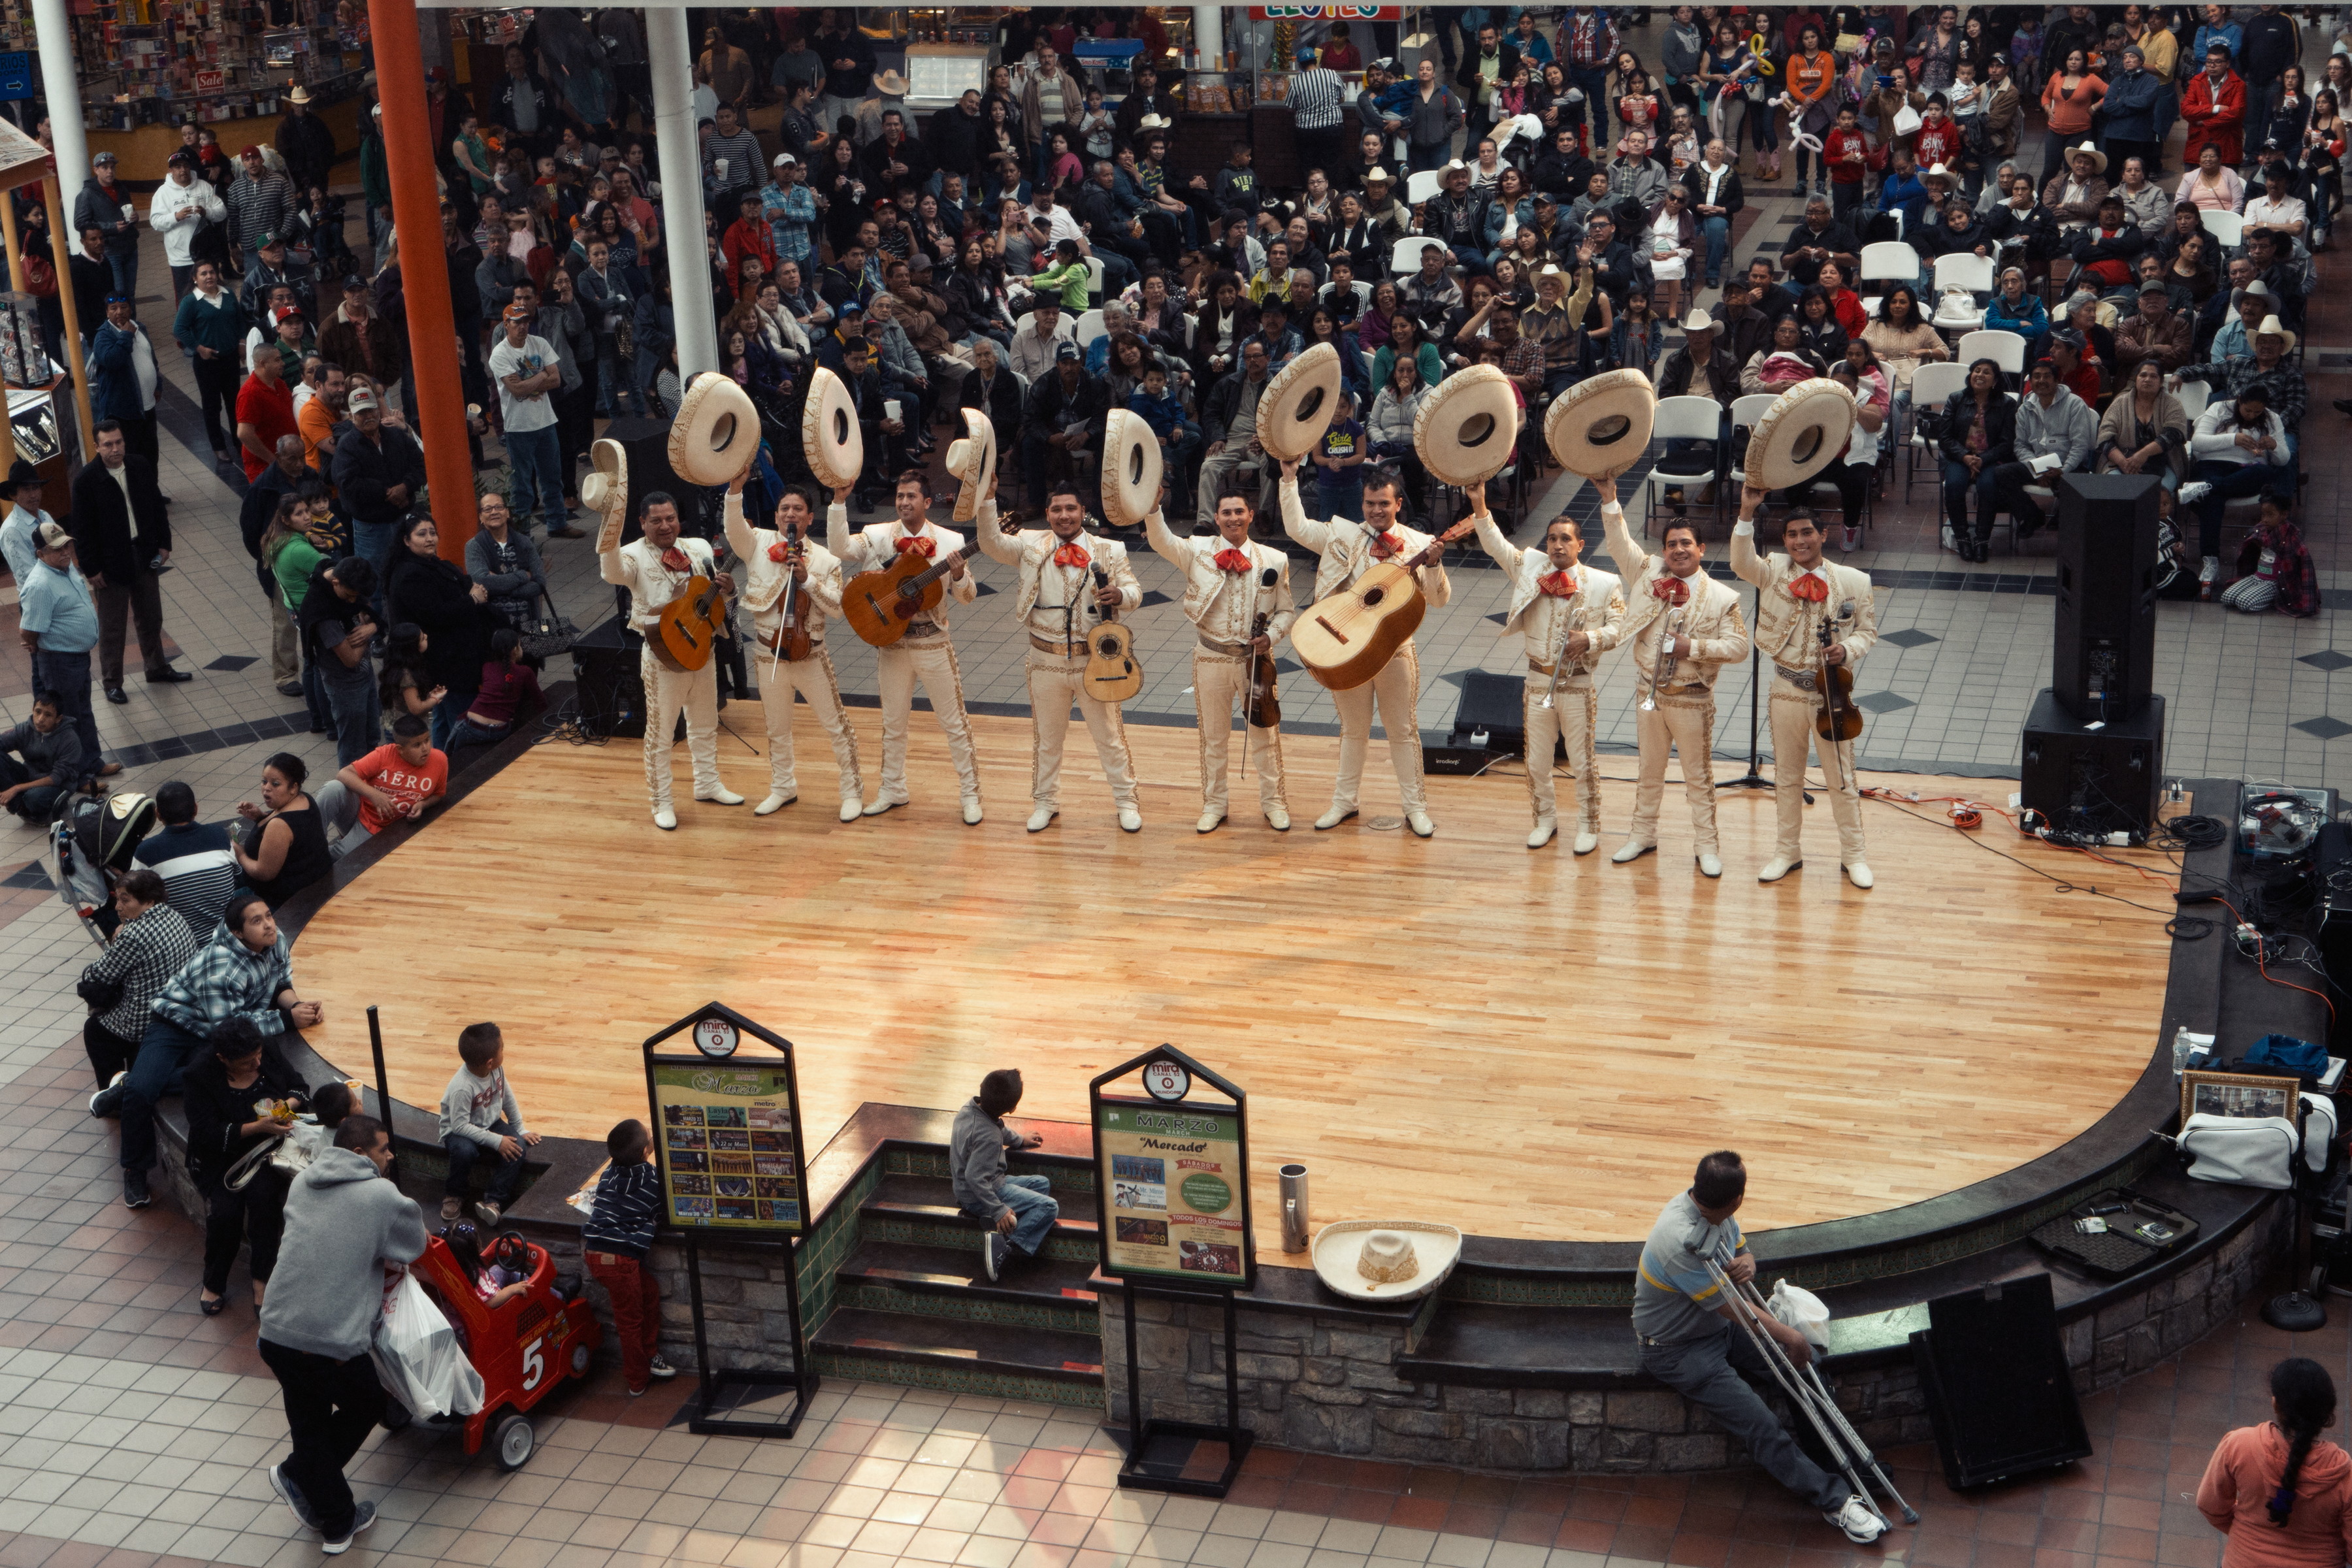 Mariachis start their performance for a packed audience.